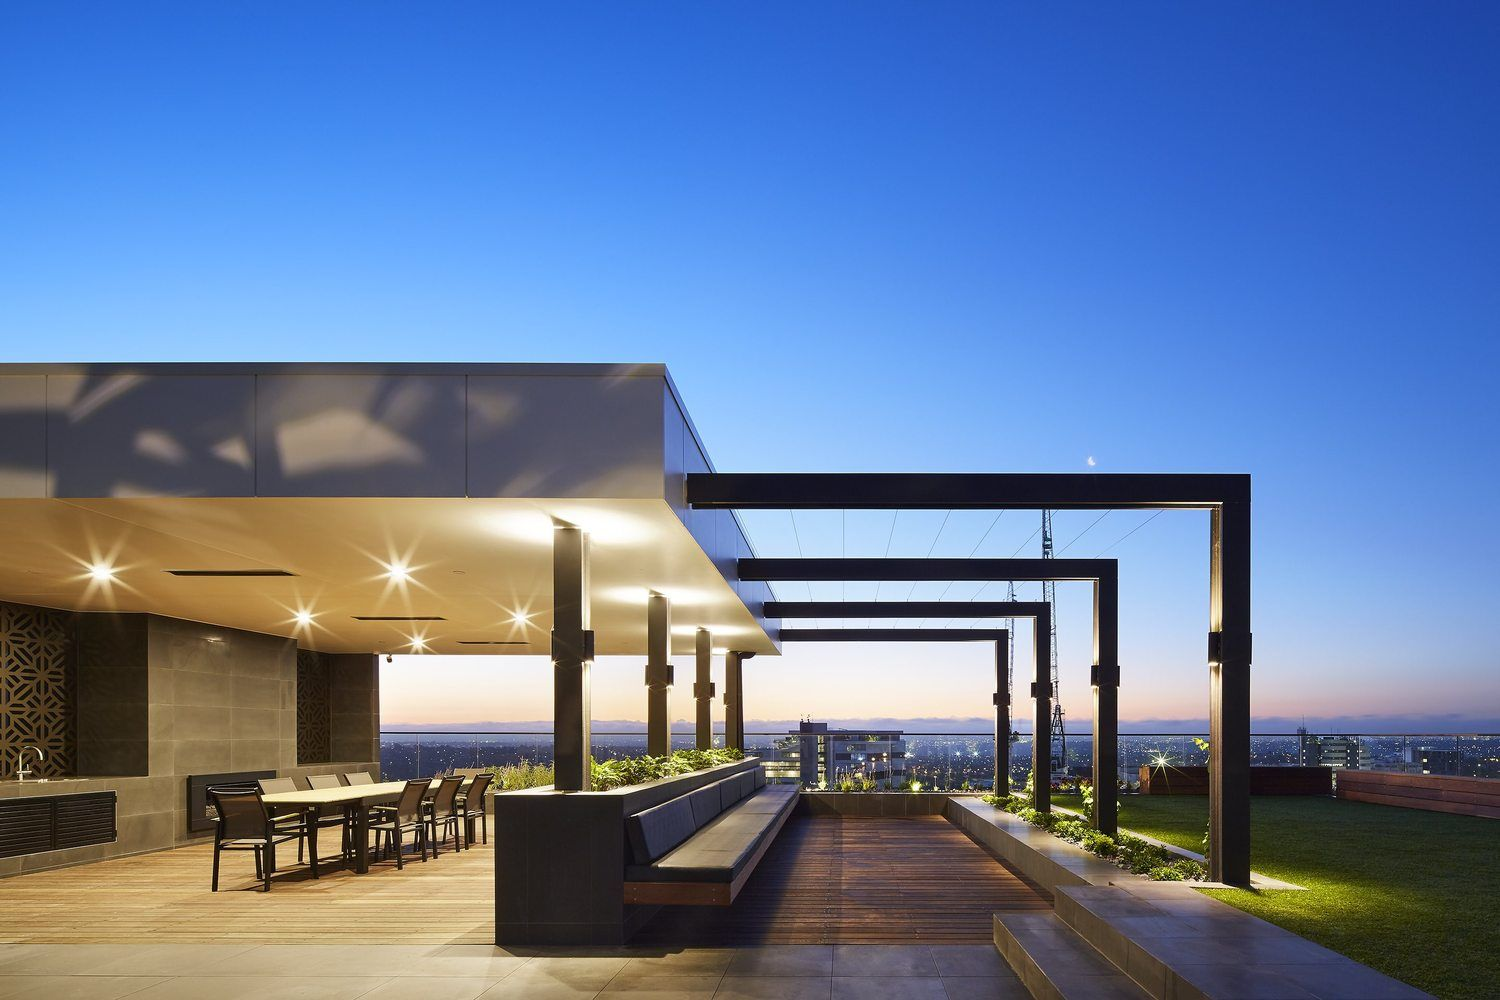 Gallery Of Magnolia Building Cht Architects 3 Roof Architecture Modern Roofing Building